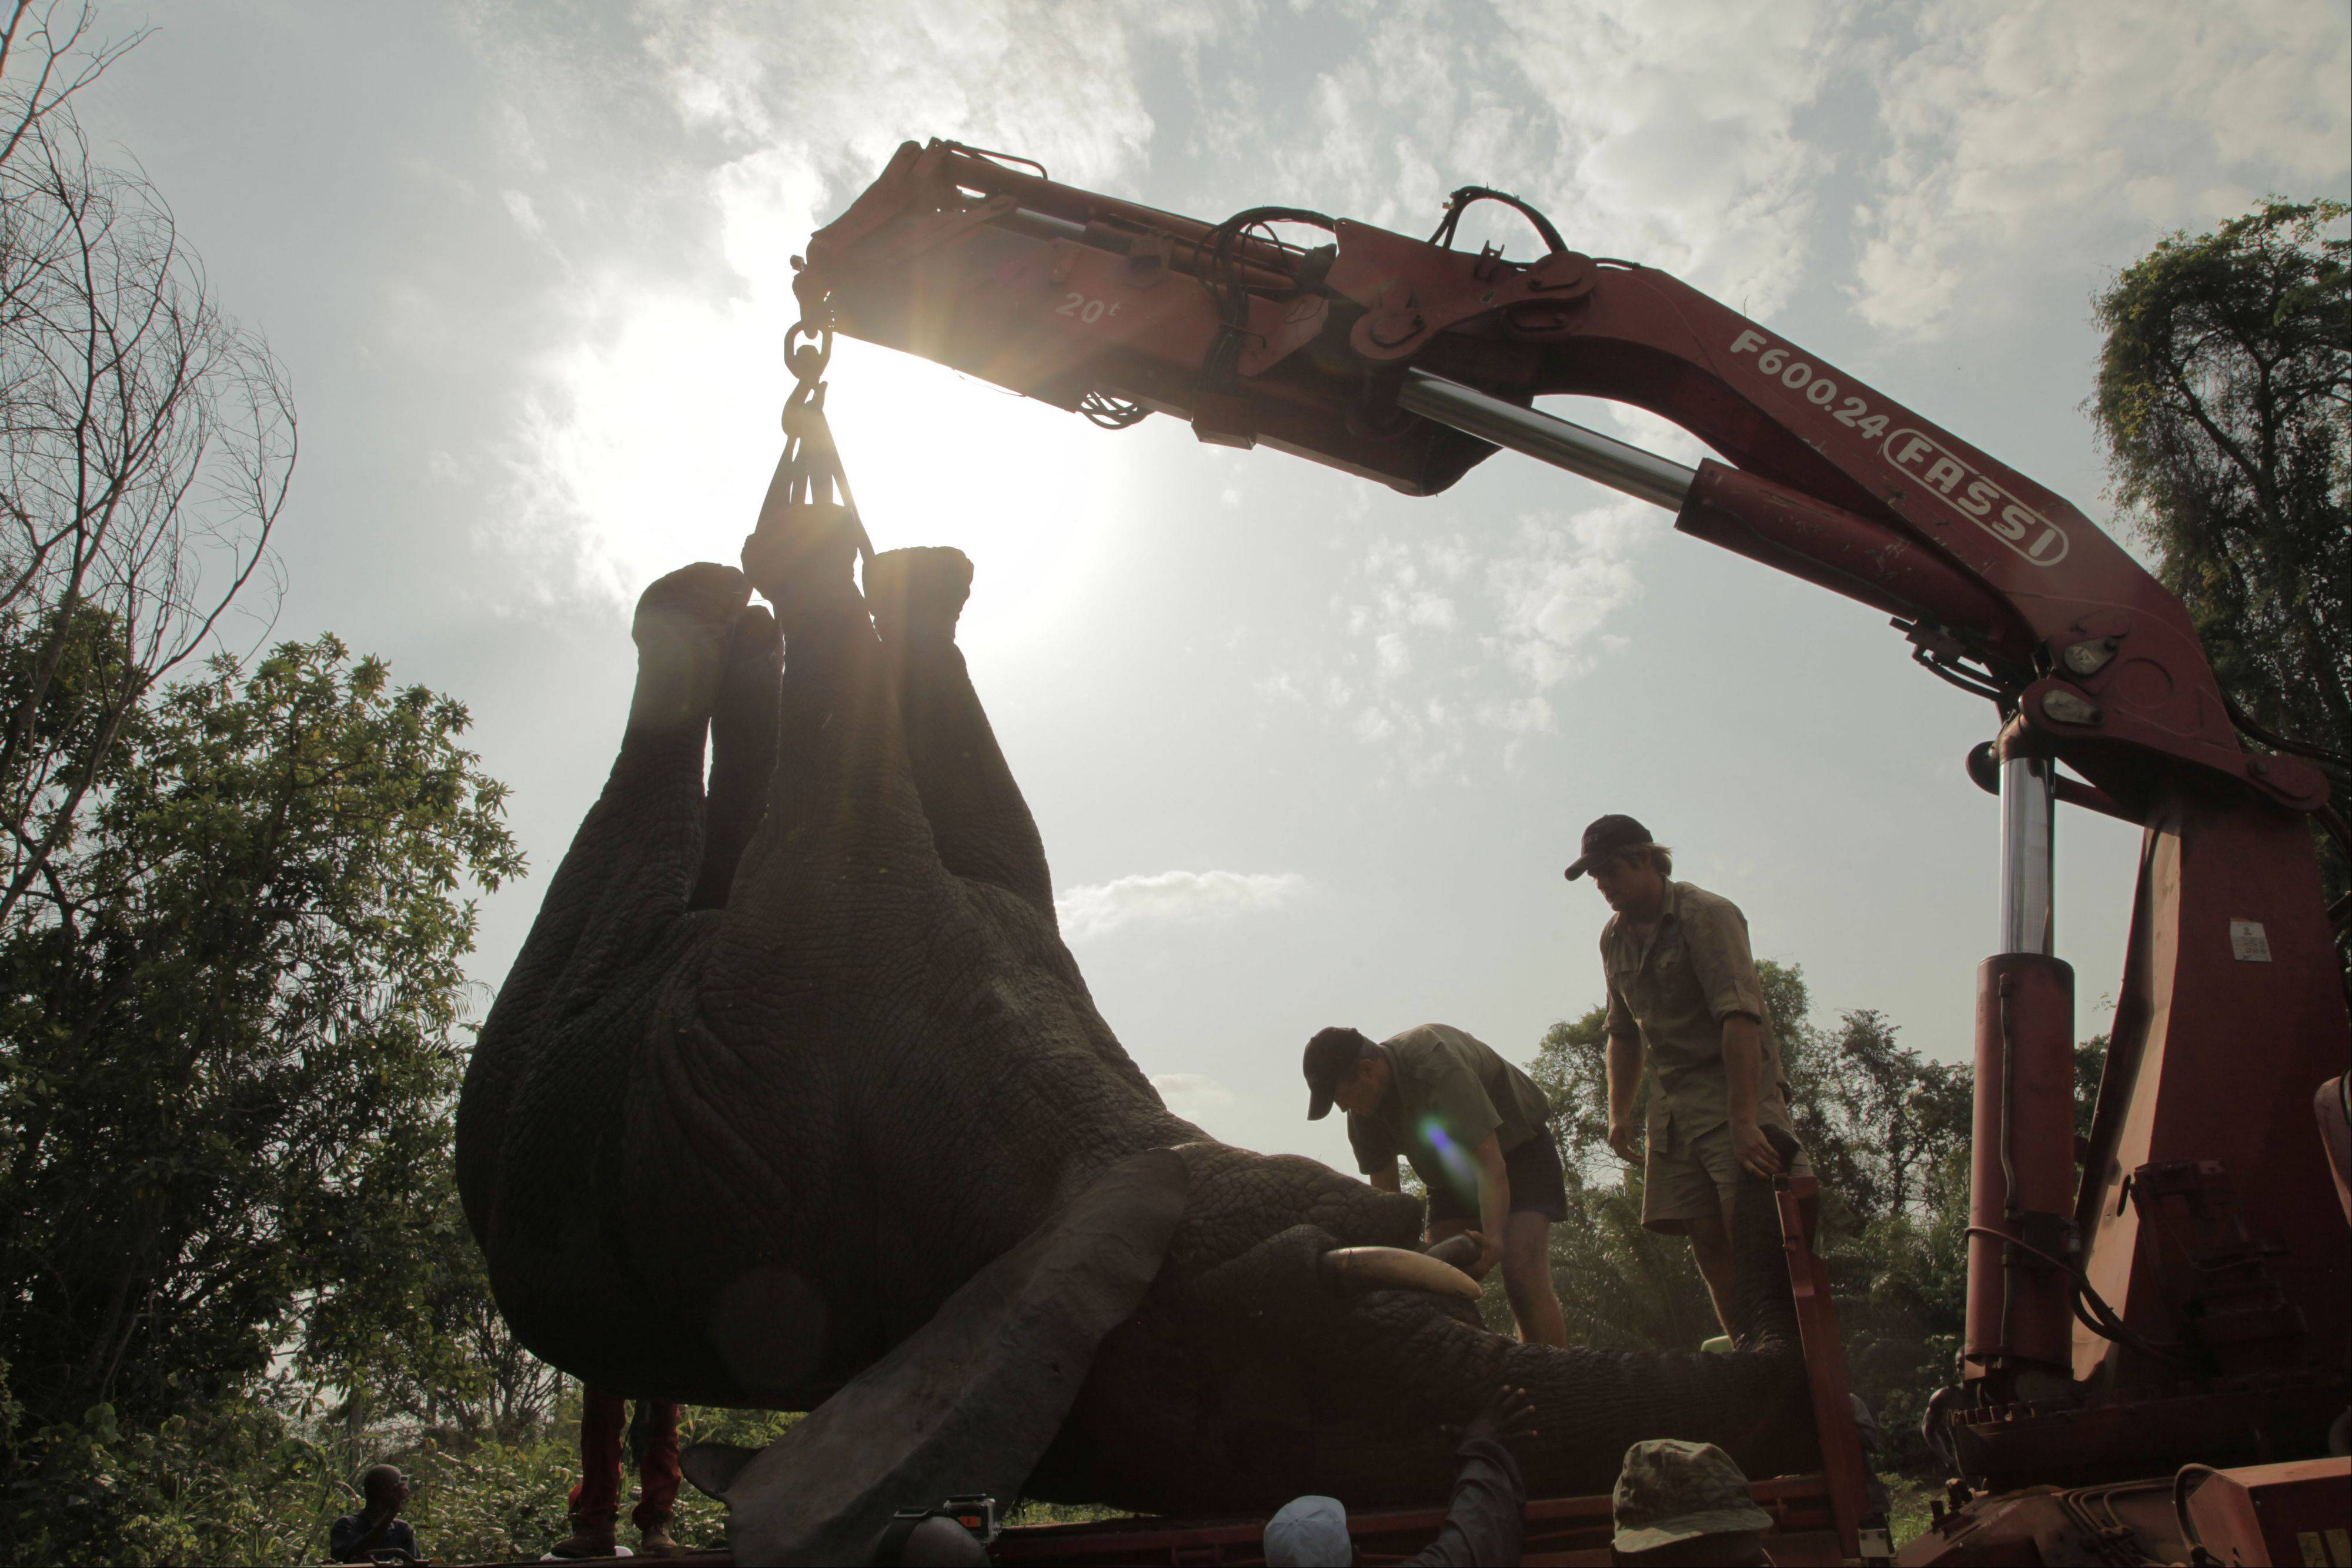 A tranquilized elephant is loaded on a truck near the town of Daloa in western Ivory Coast. Conservationists are capturing and relocating elephants in Ivory Coast forced out of their traditional habitat by encroaching humans, in the first such operation attempted in Africa's forests.